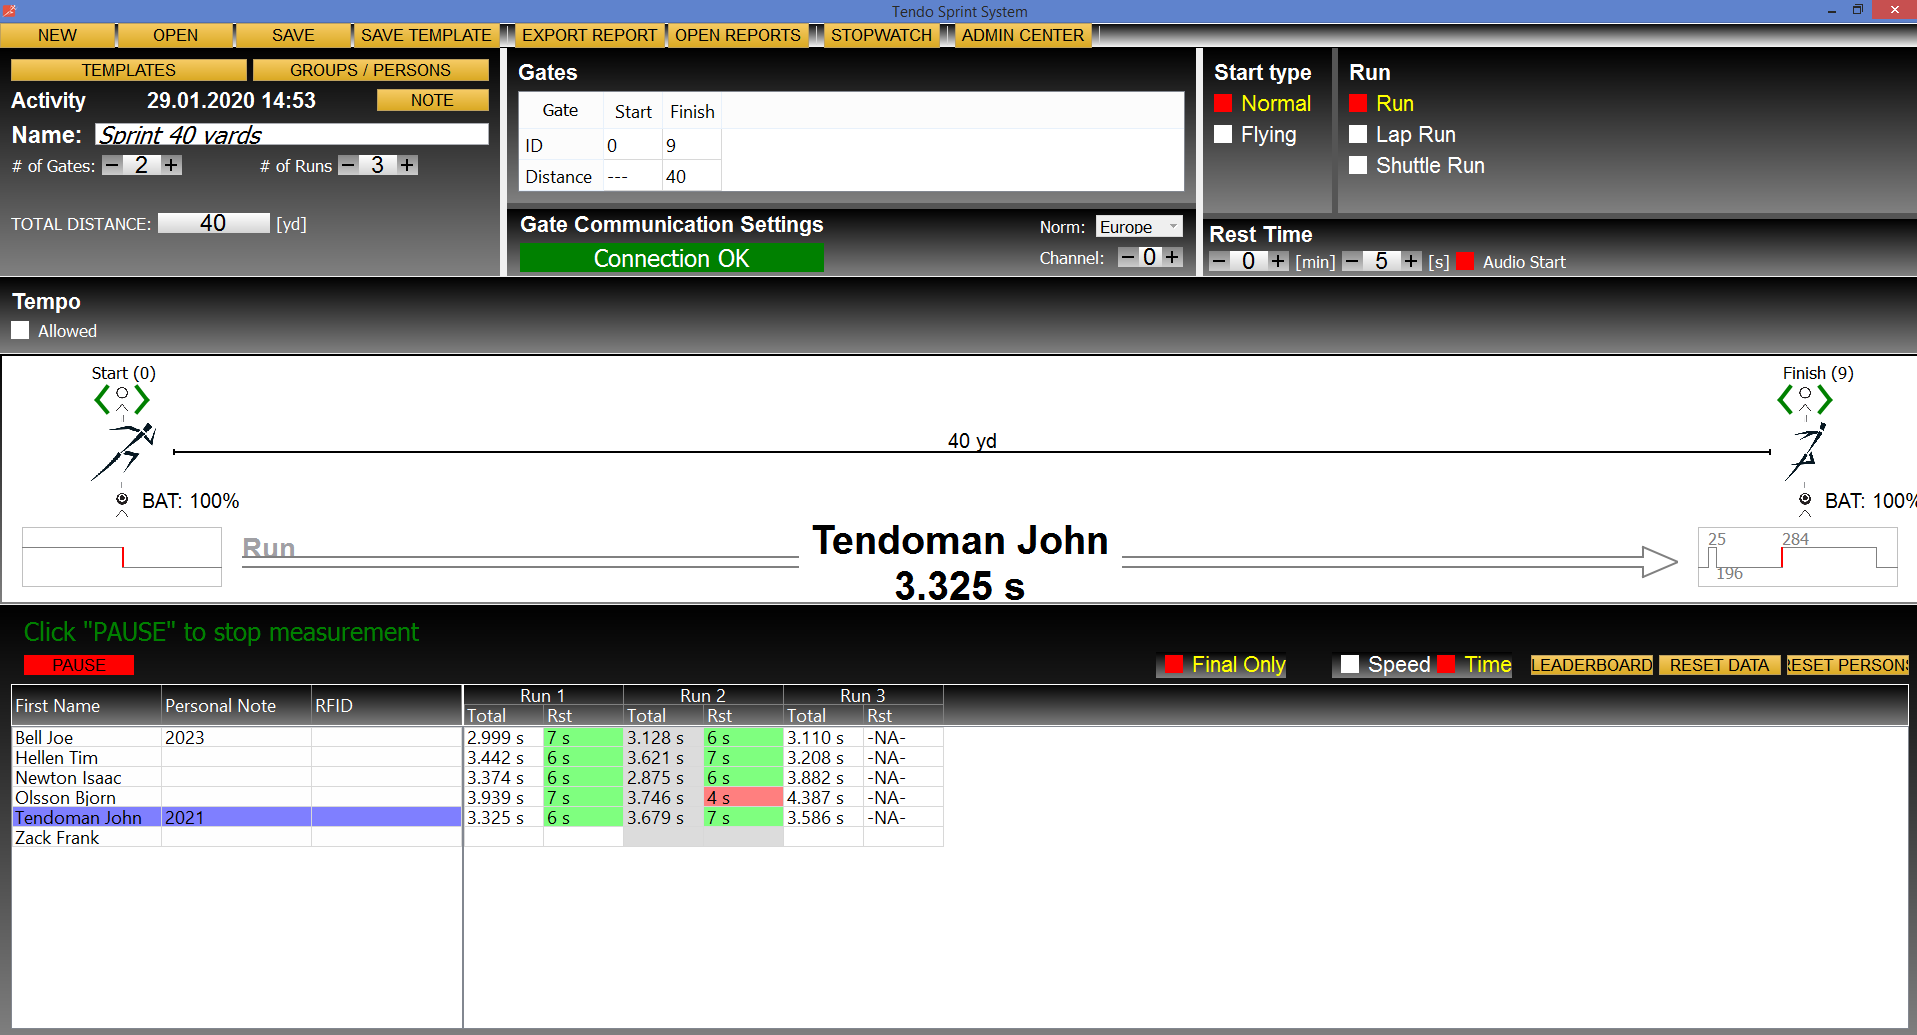 Tendo Sprint System, the timing system main training window